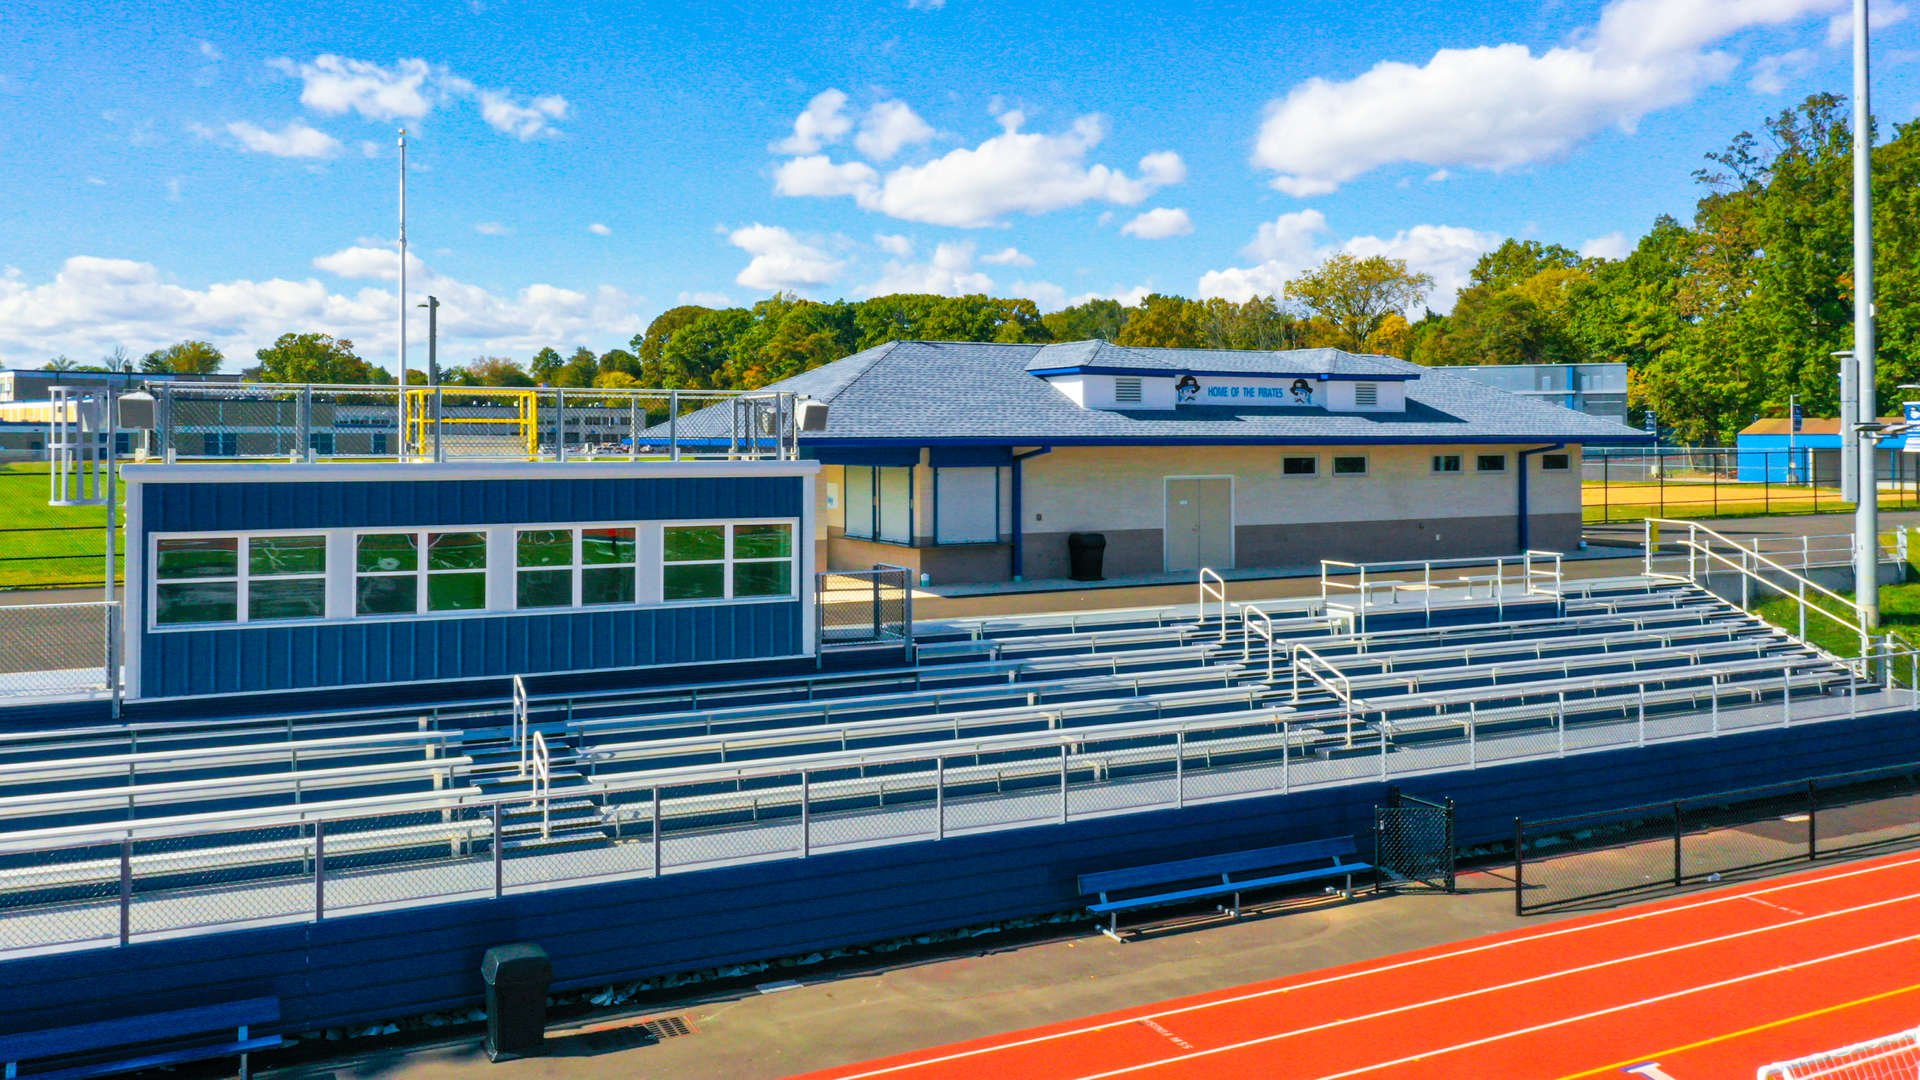 PRSD HS Bleachers and Concession Stand - Drone Shot